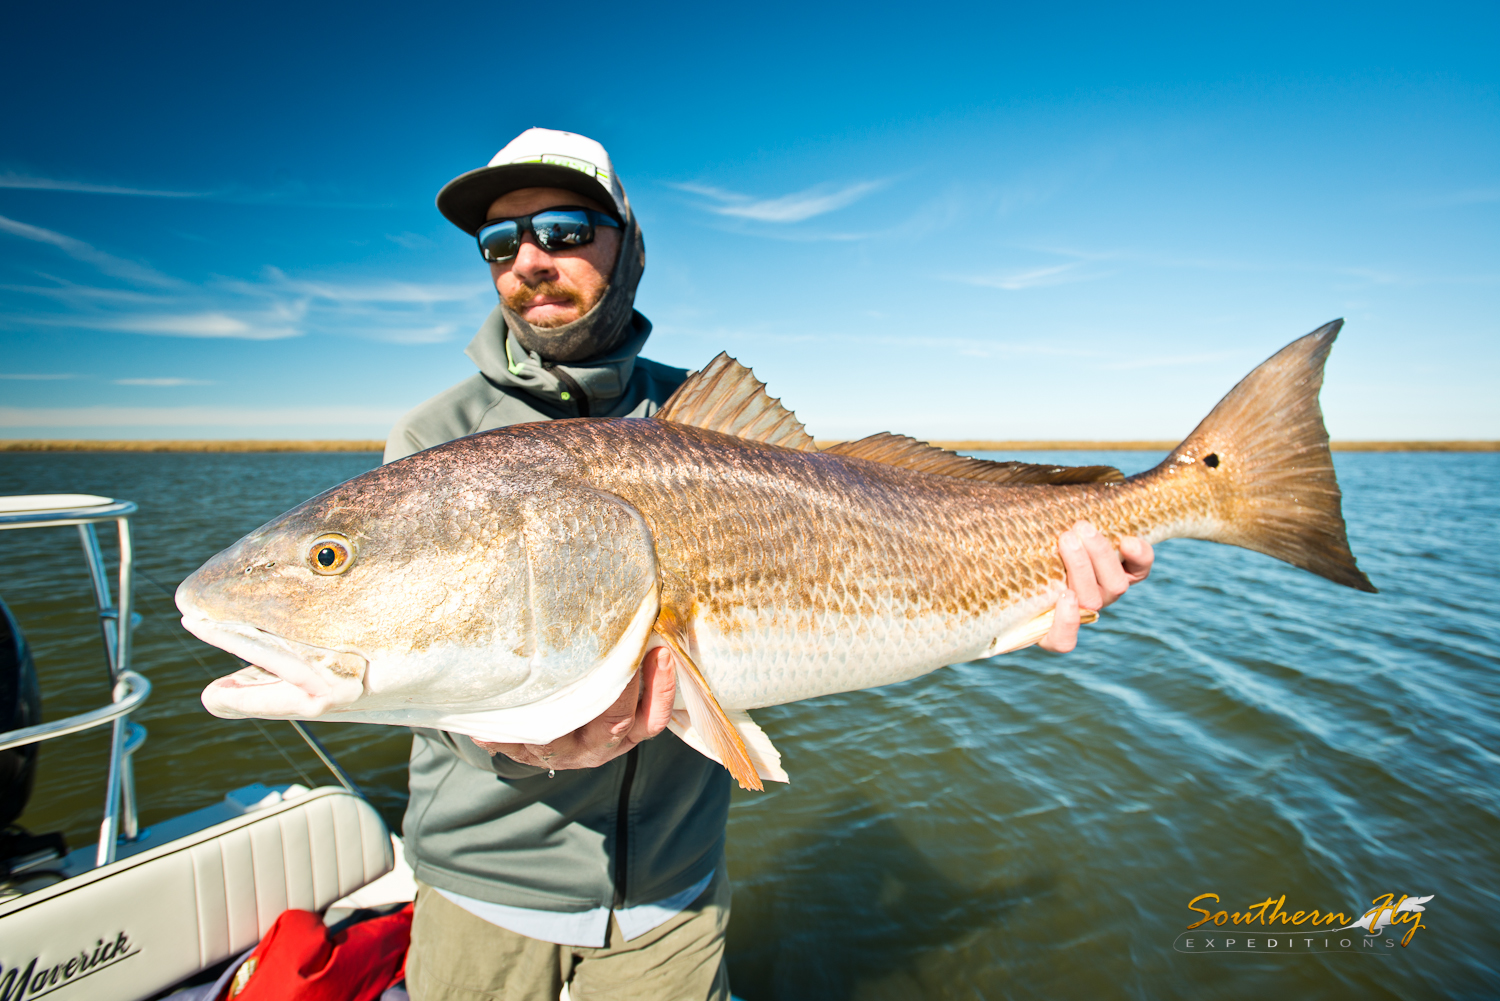 Southern Fly Expeditions fly fishing new orleans with Captain Brandon Keck